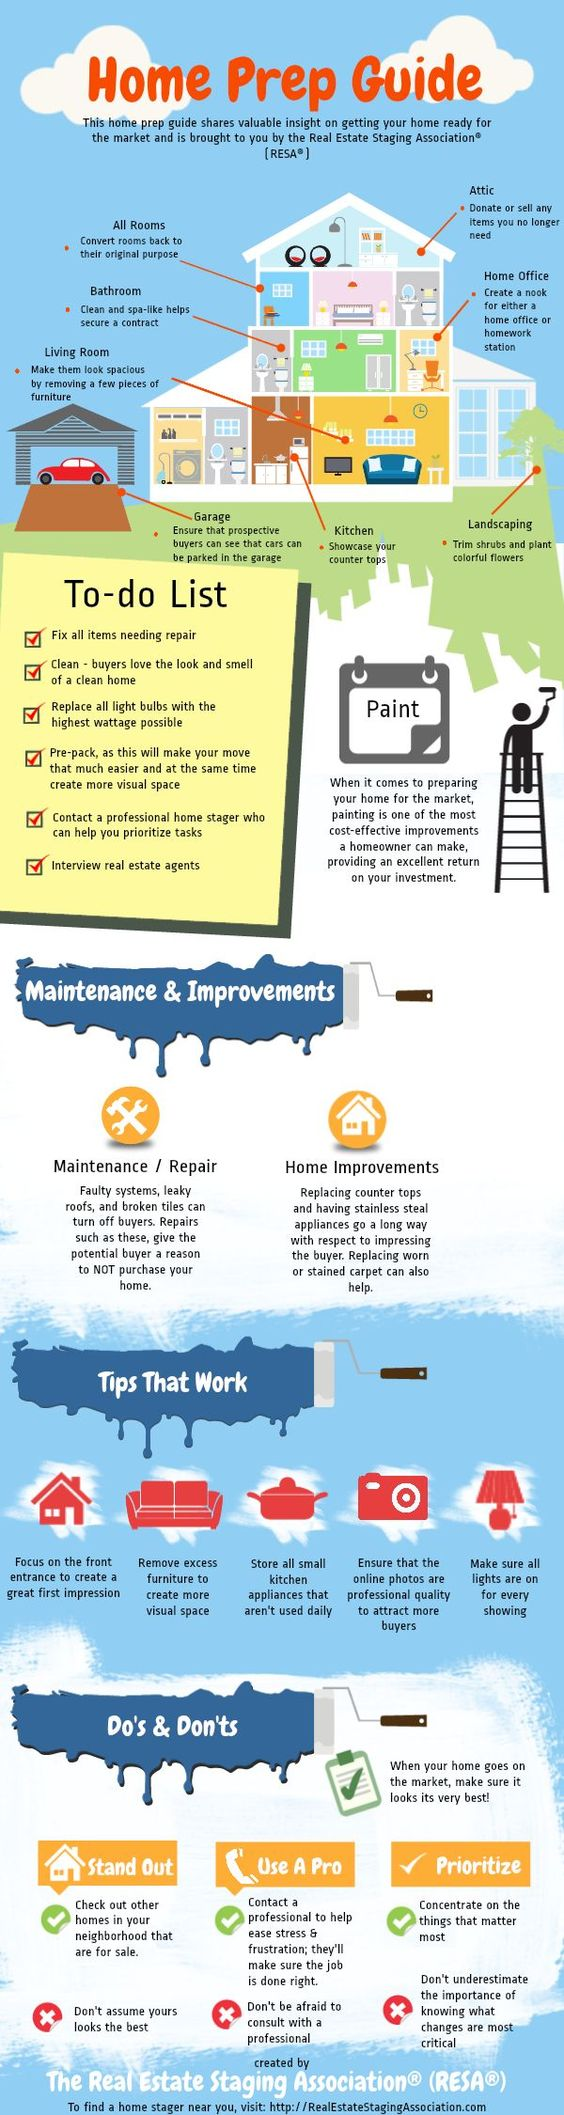 Good ideas for selling your house